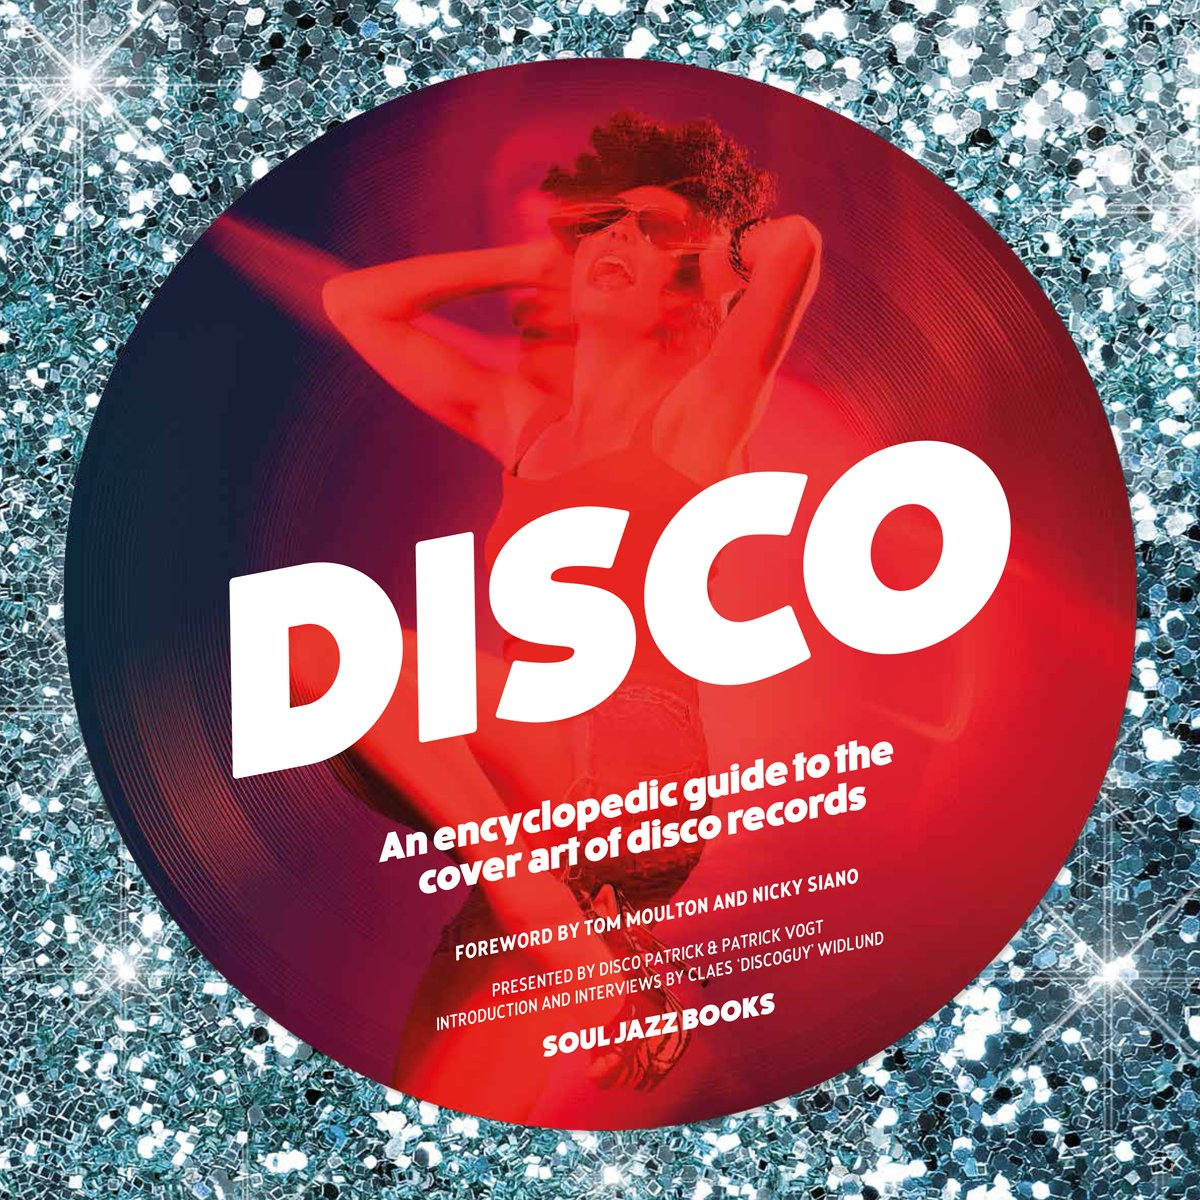 Disco: An Encyclopaedic Guide To The Cover Art Of Disco Records